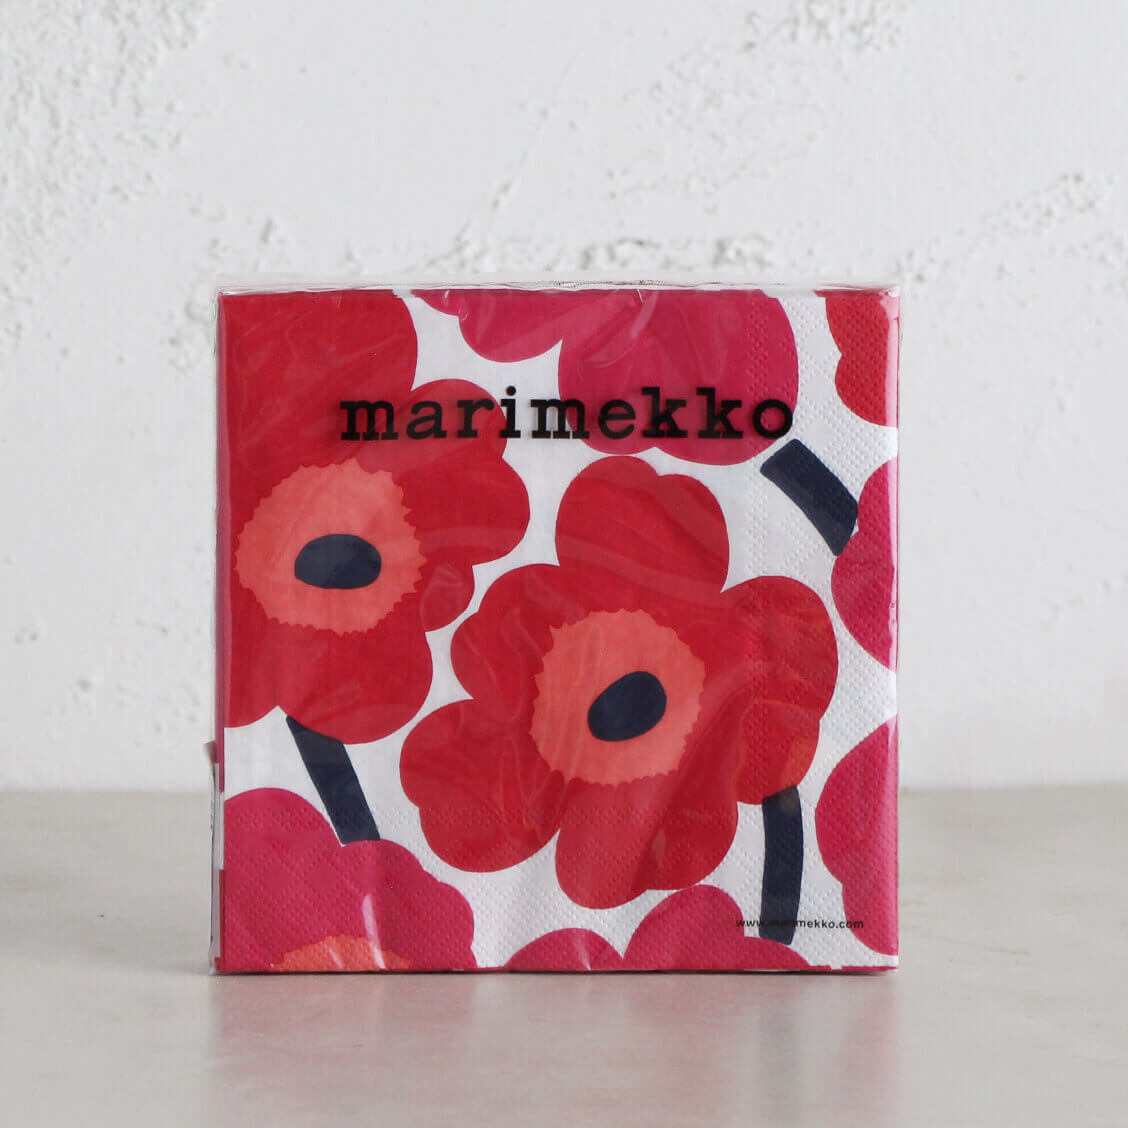 MARIMEKKO  |  UNIKKO NAPKIN  | RED + ORANGE + PINK  |  PAPER SERVIETTES